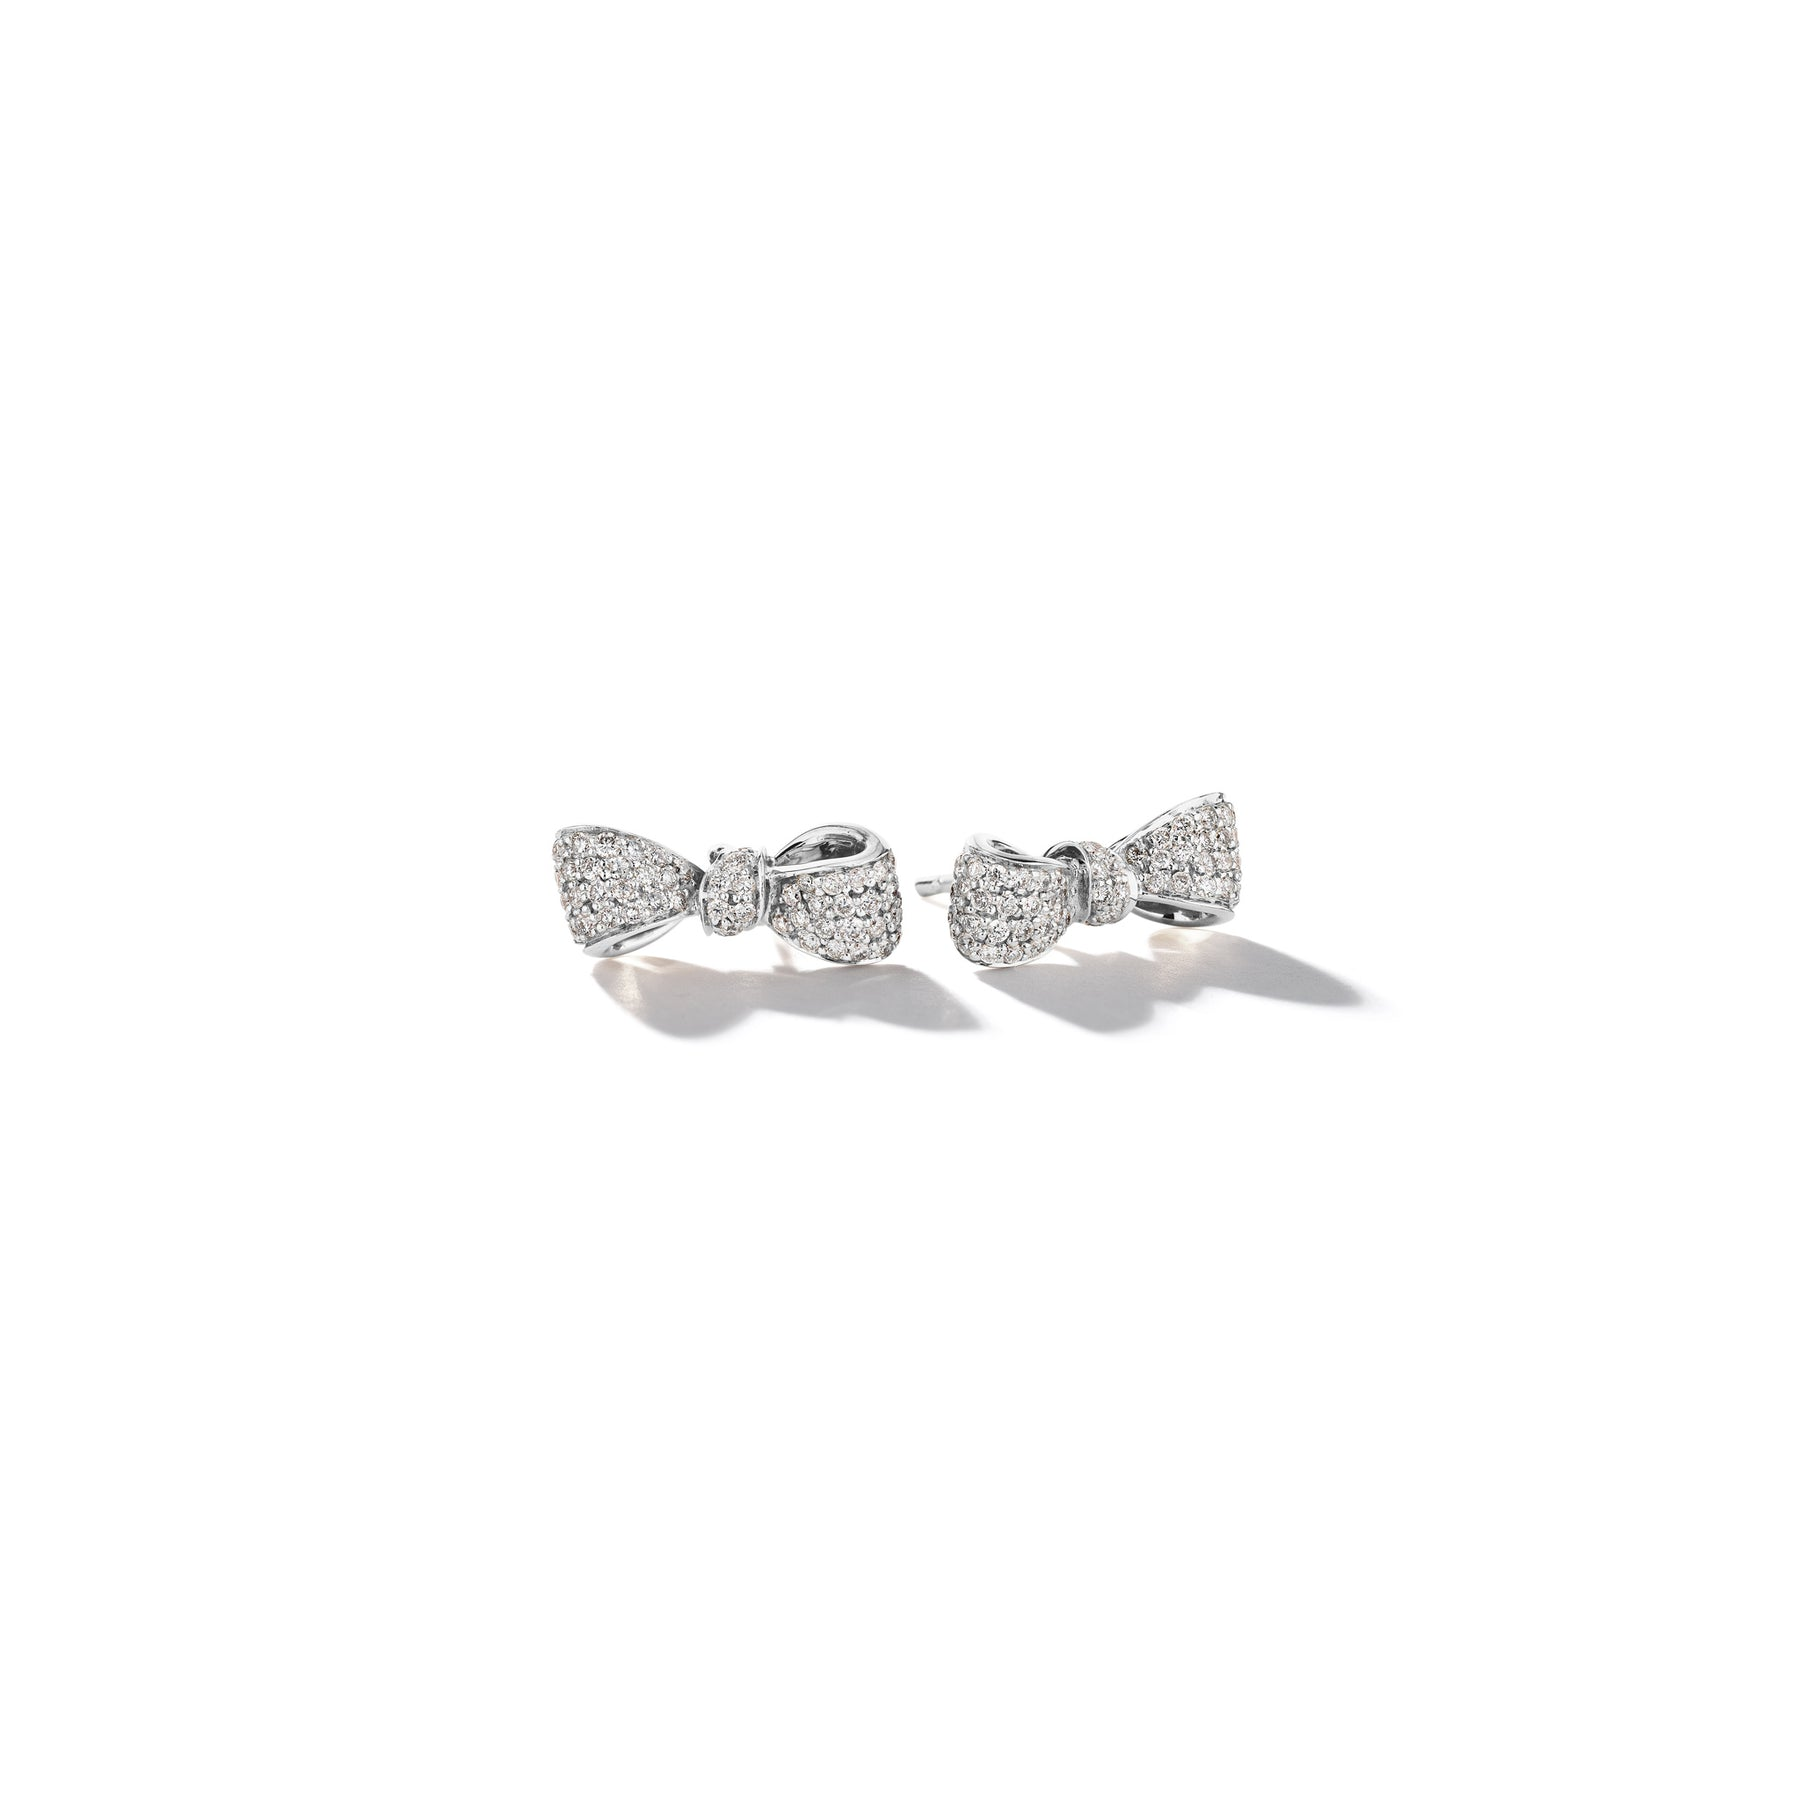 Mimi-So-Bow-Diamond-Earrings-Mini_18k White Gold